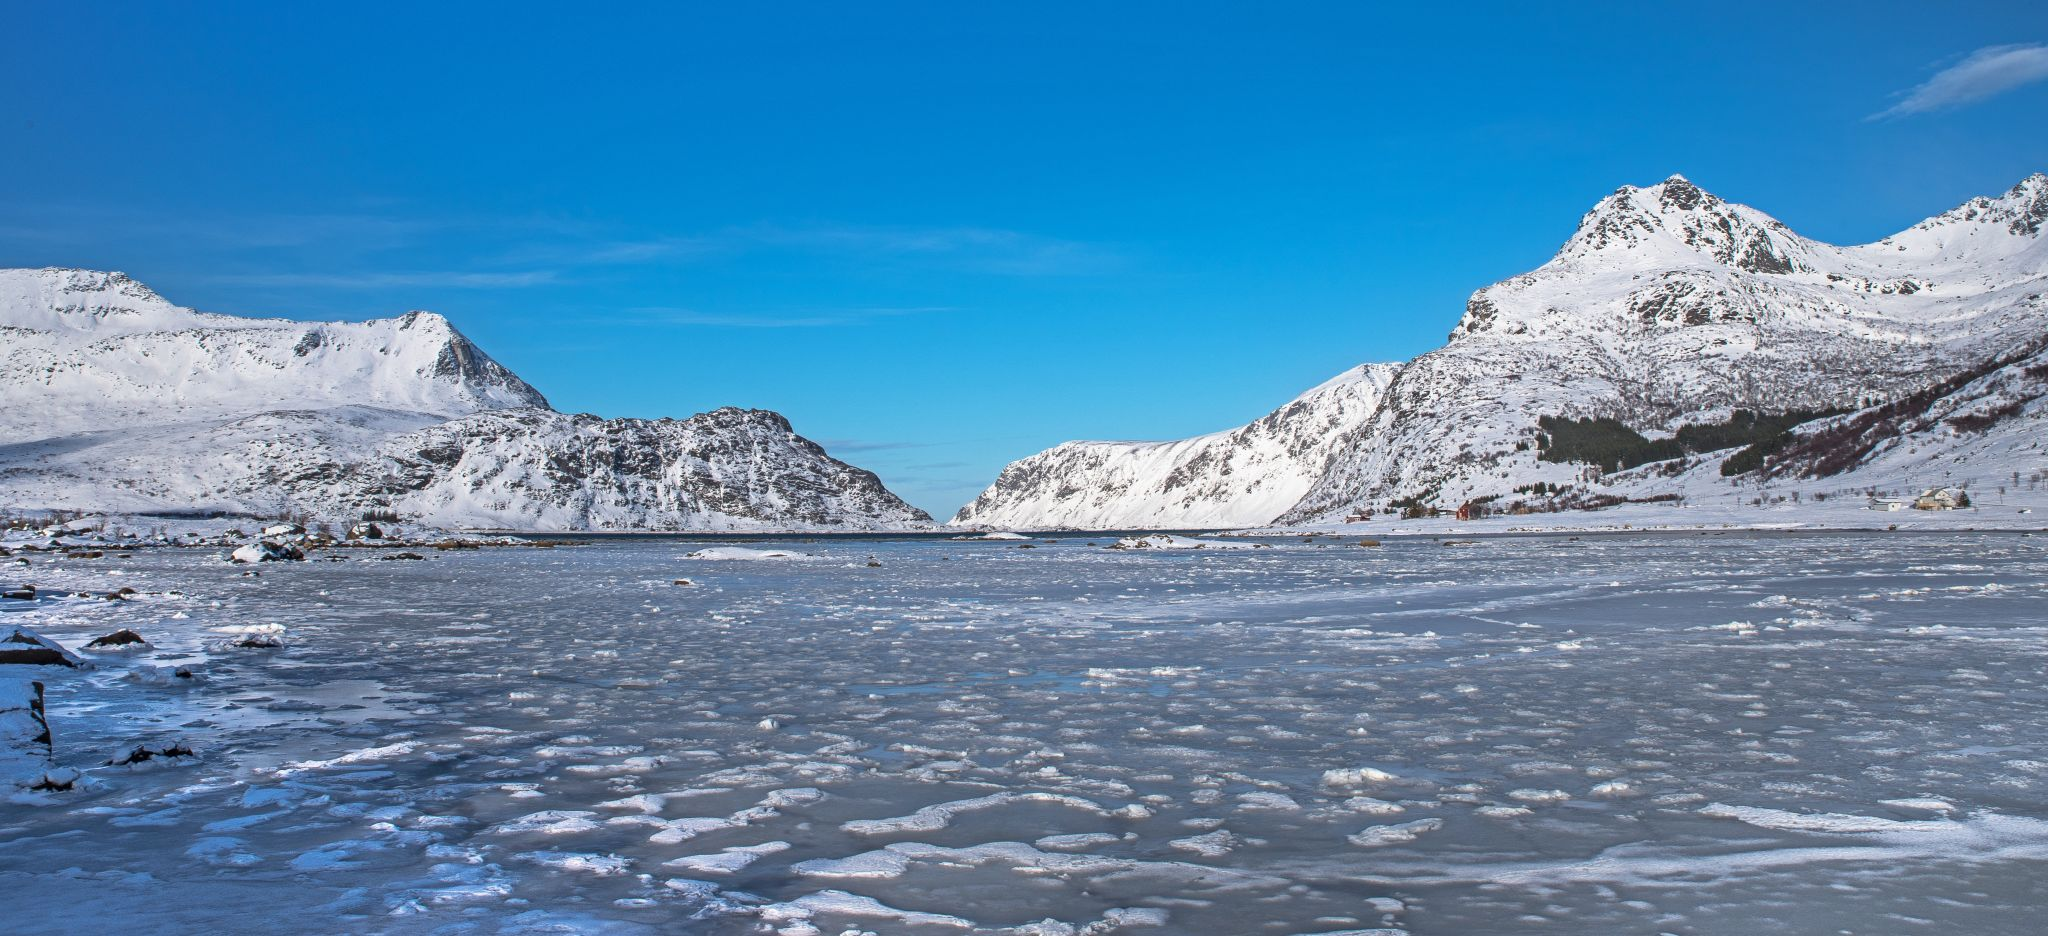 The Frozen Cove, Norway